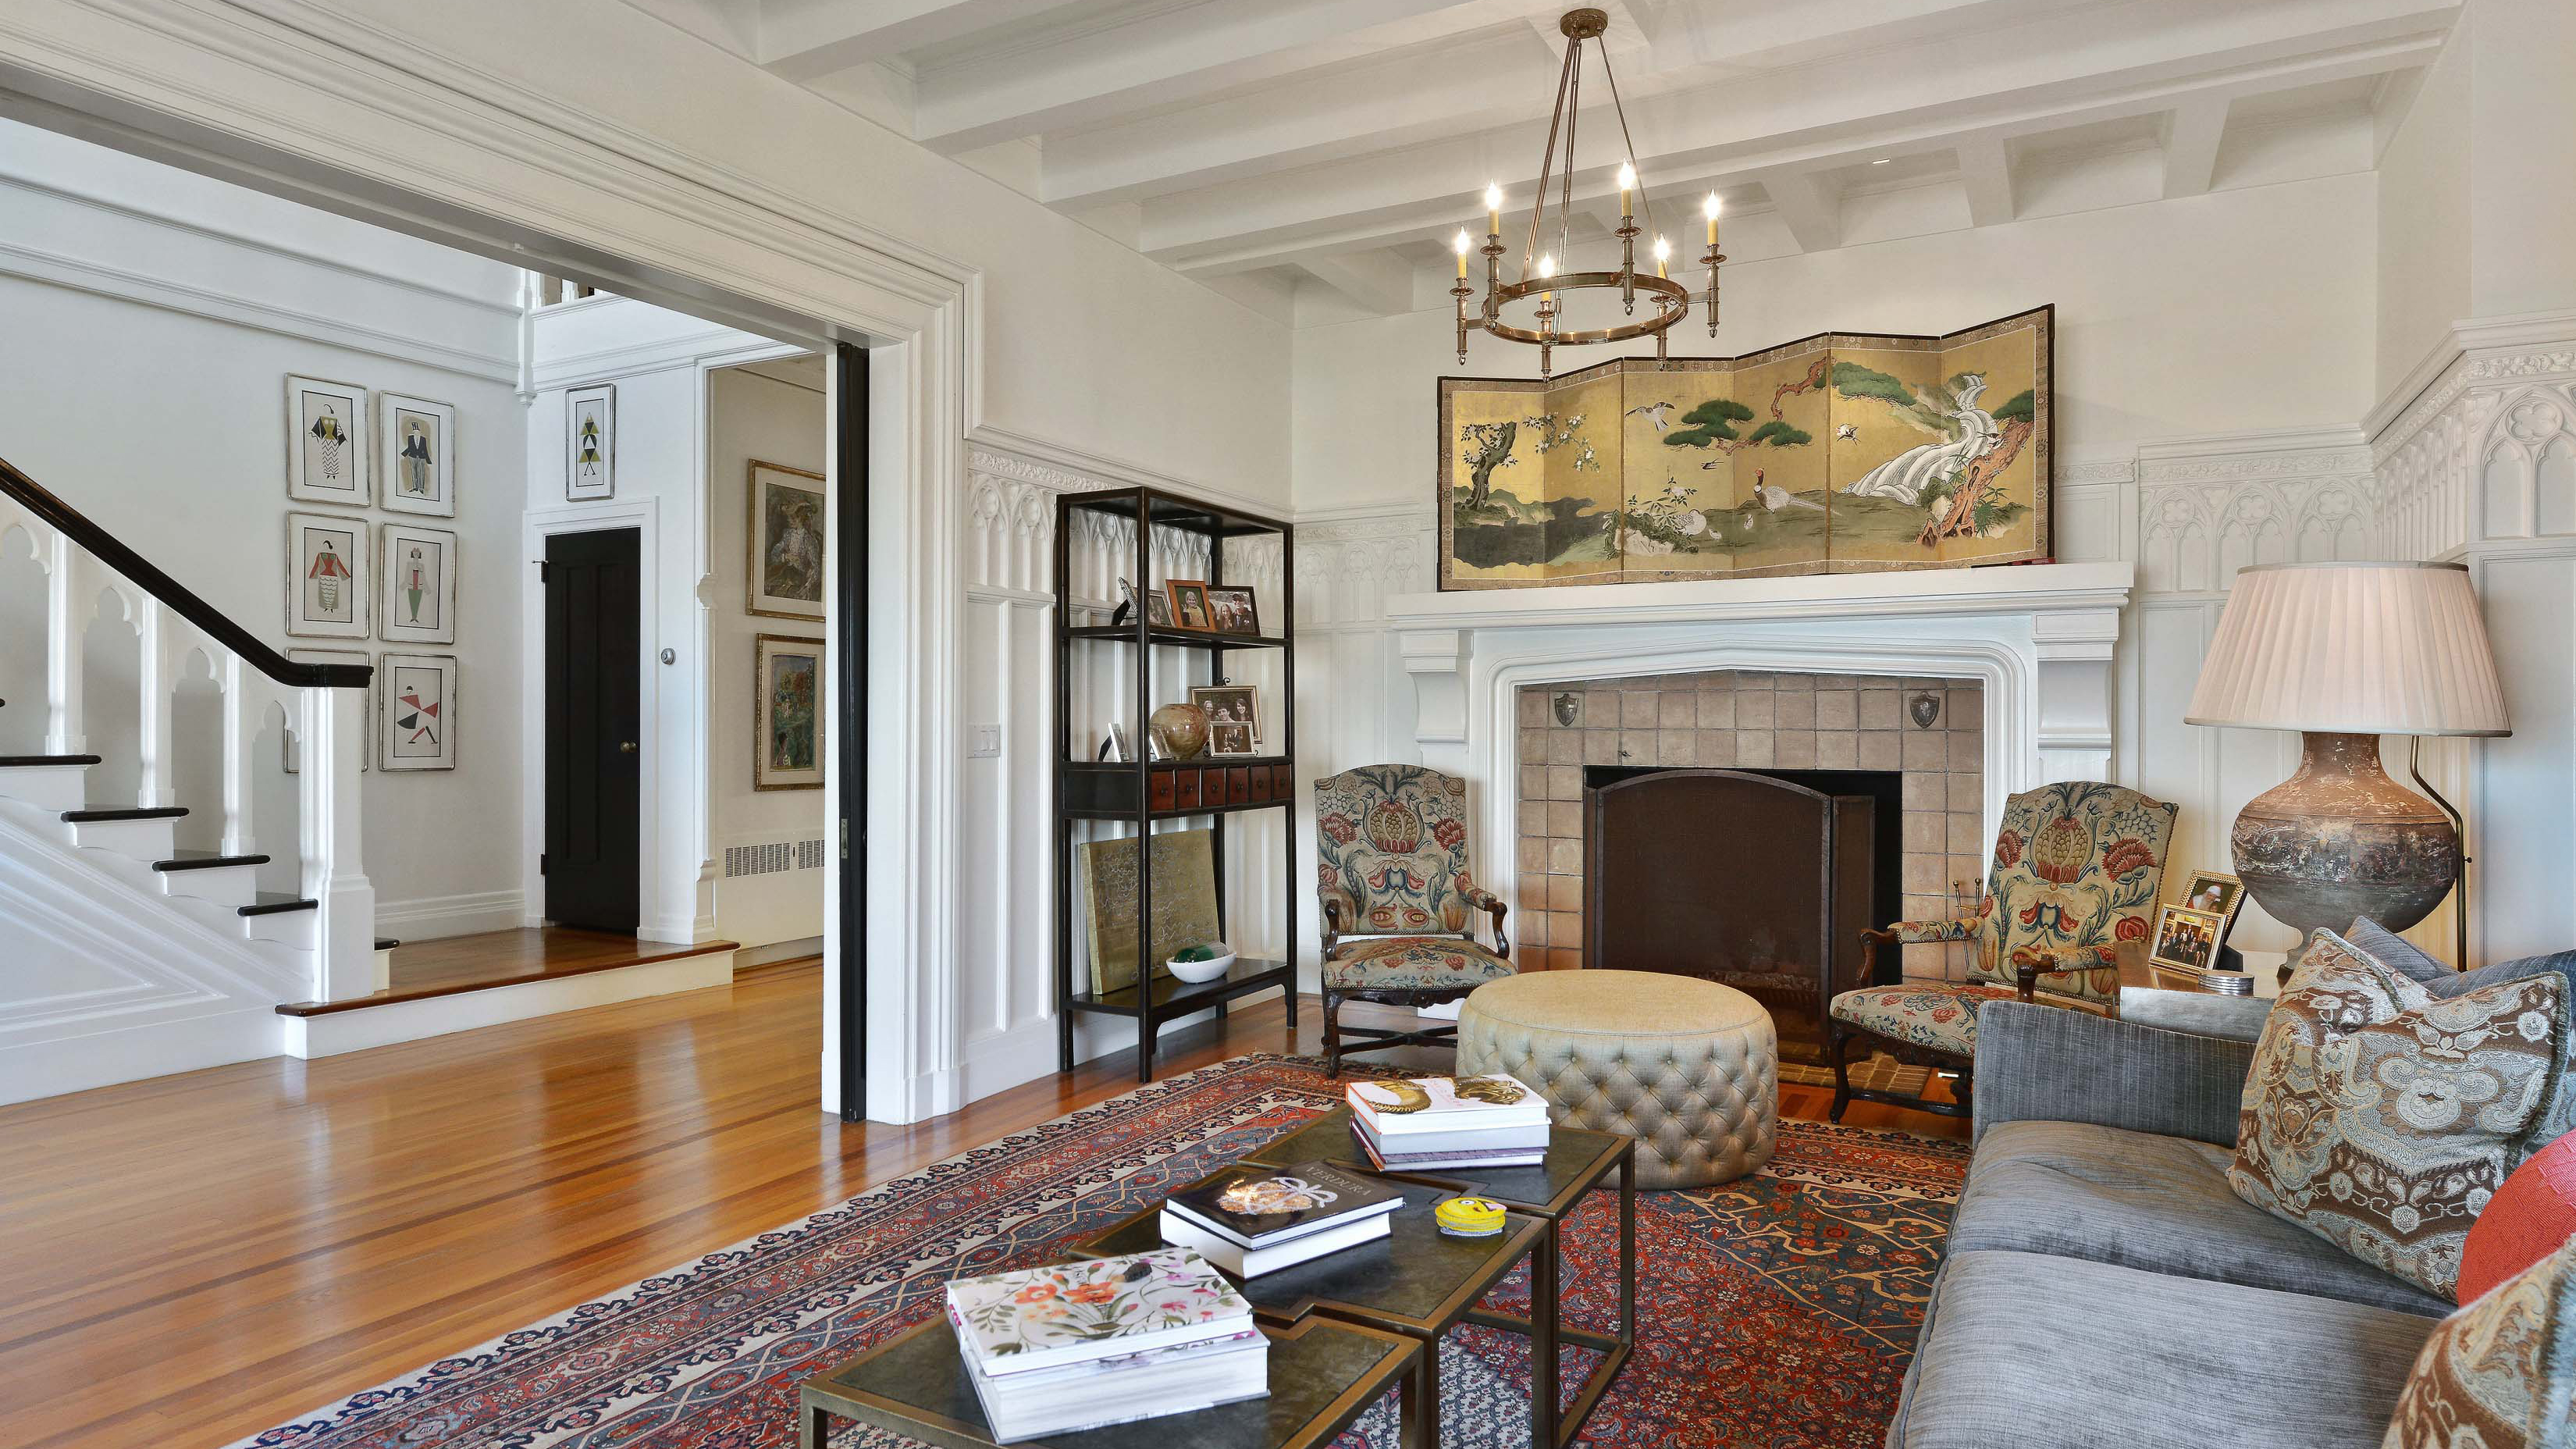 The 6,305-square-foot property's living area.